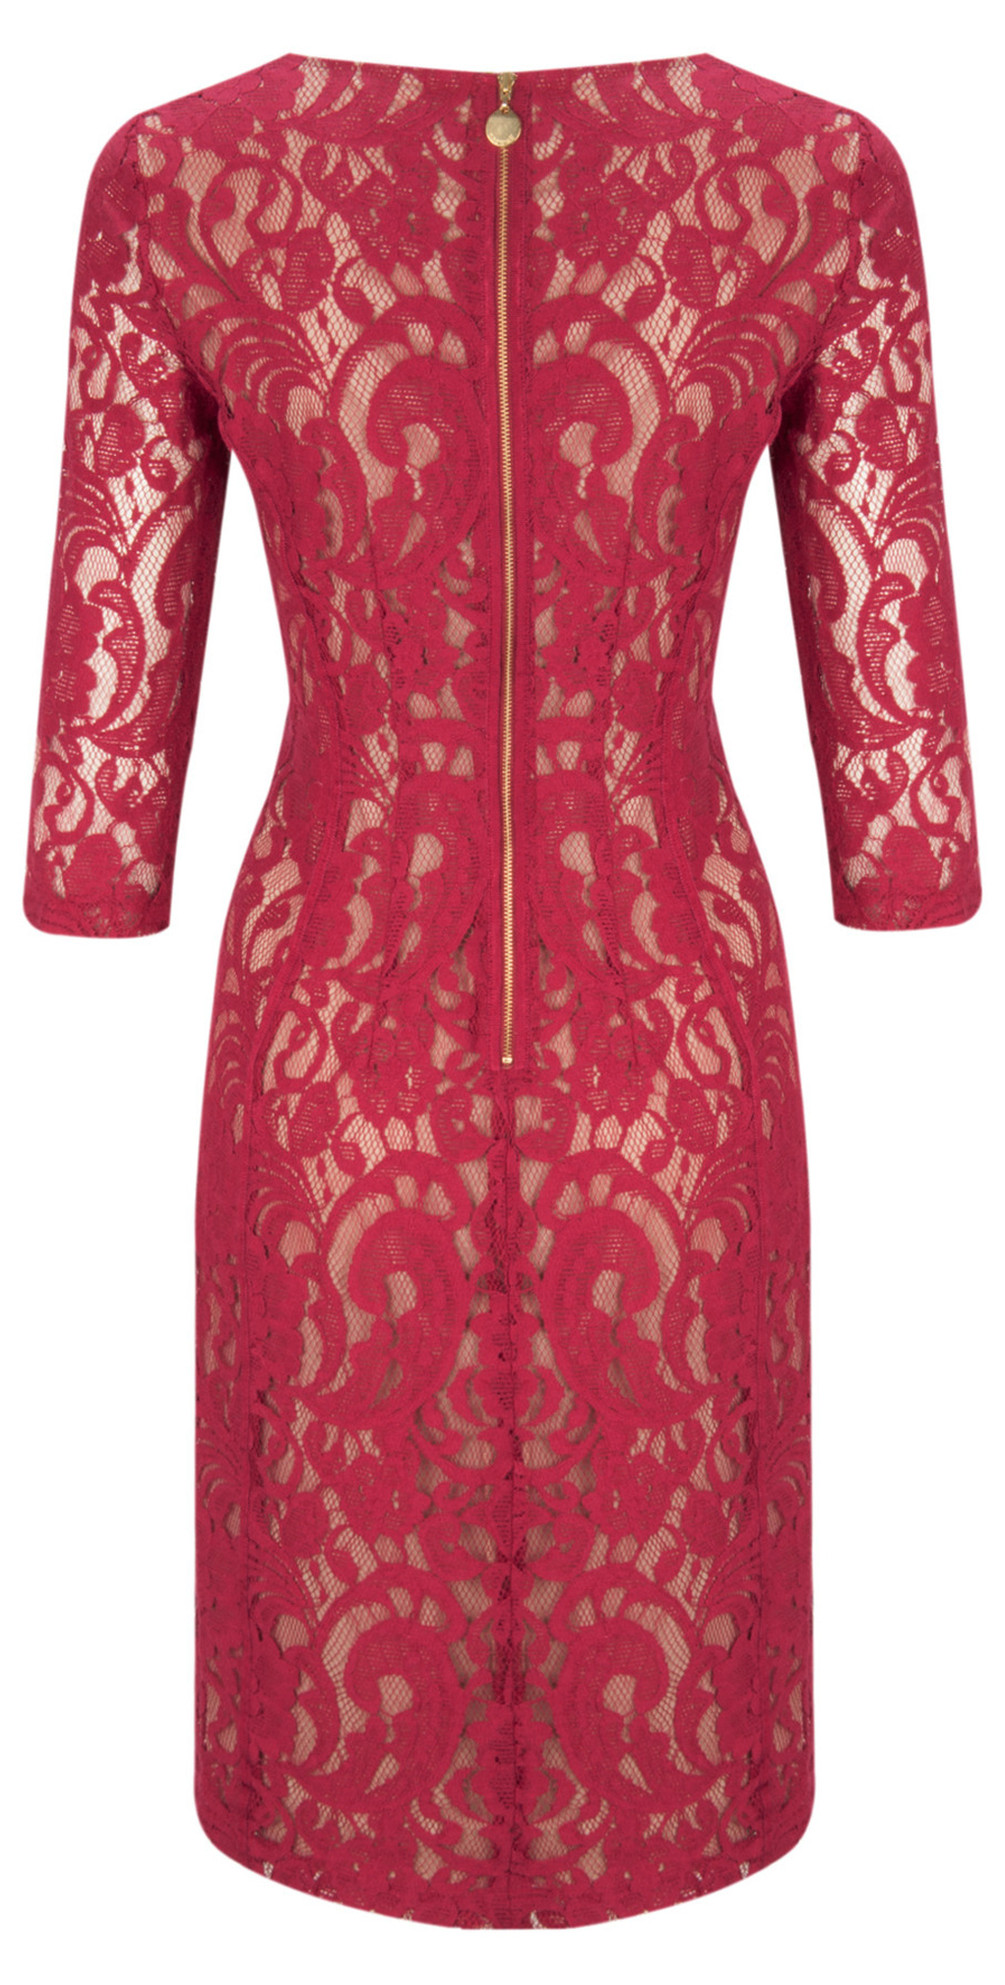 ea93fdfecae0 InWear Patrice Lace Dress in Fuchsia